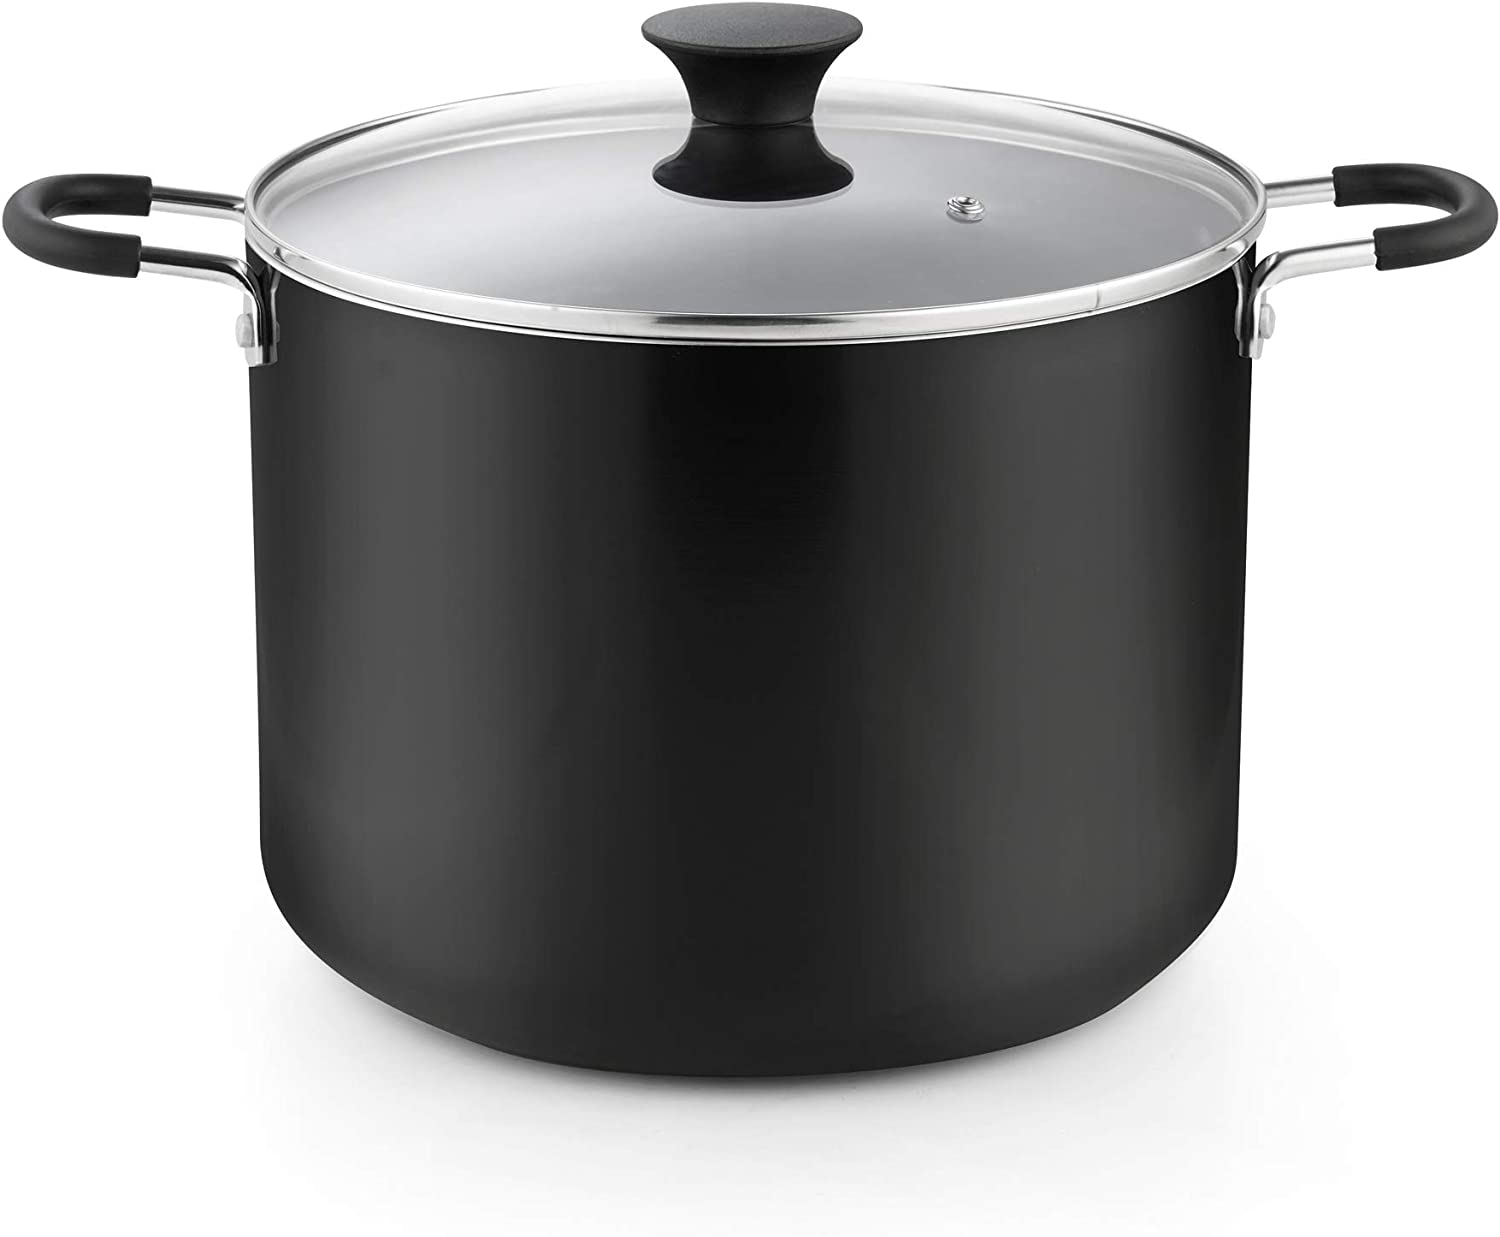 Cook N Home 02657 Nonstick Stockpot with Lid, 10.5 Quarts, Black